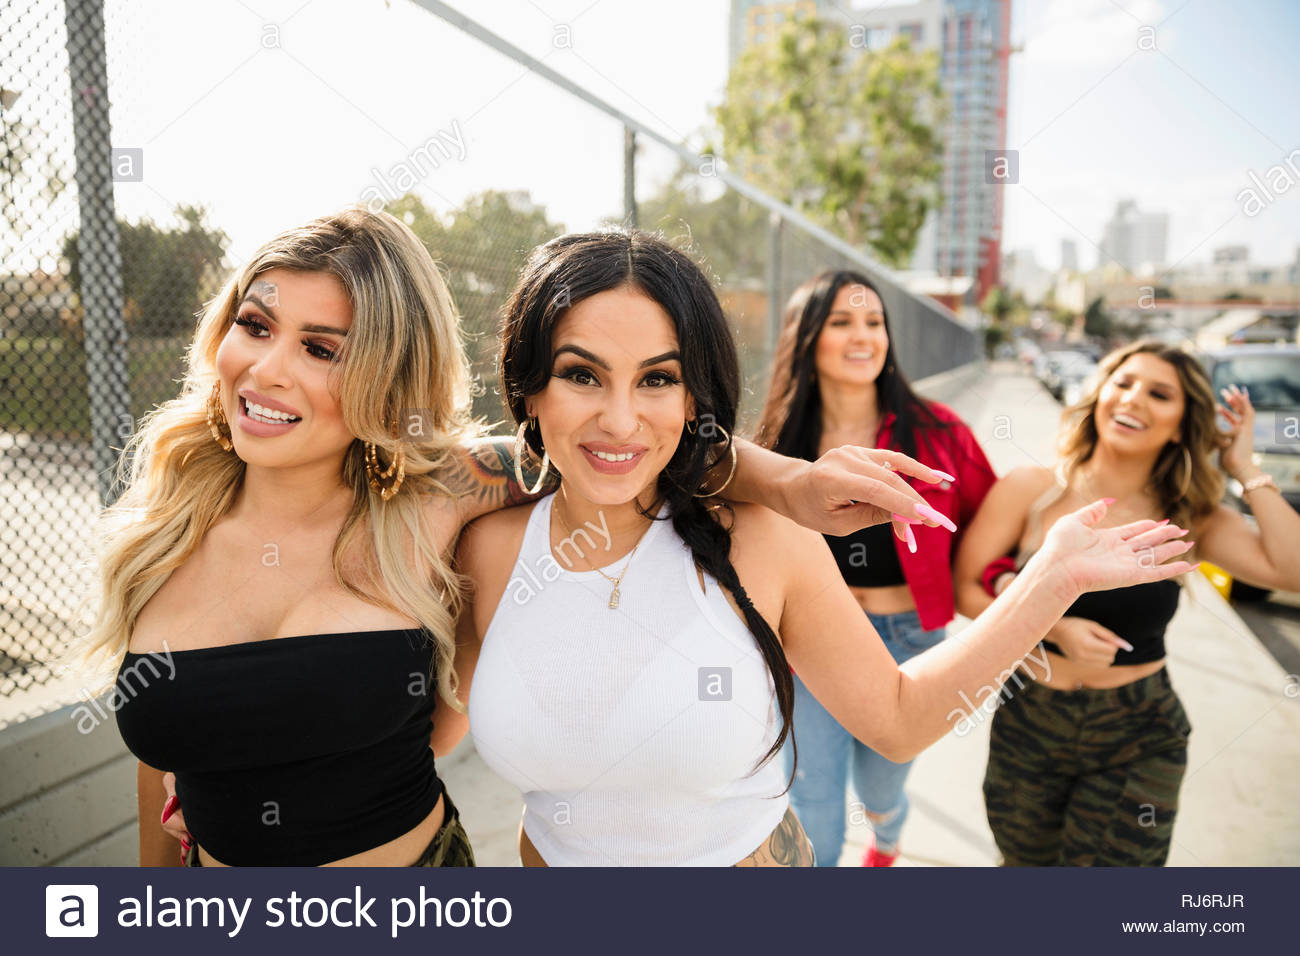 Portrait carefree Latinx young women walking on urban overpass - Stock Image